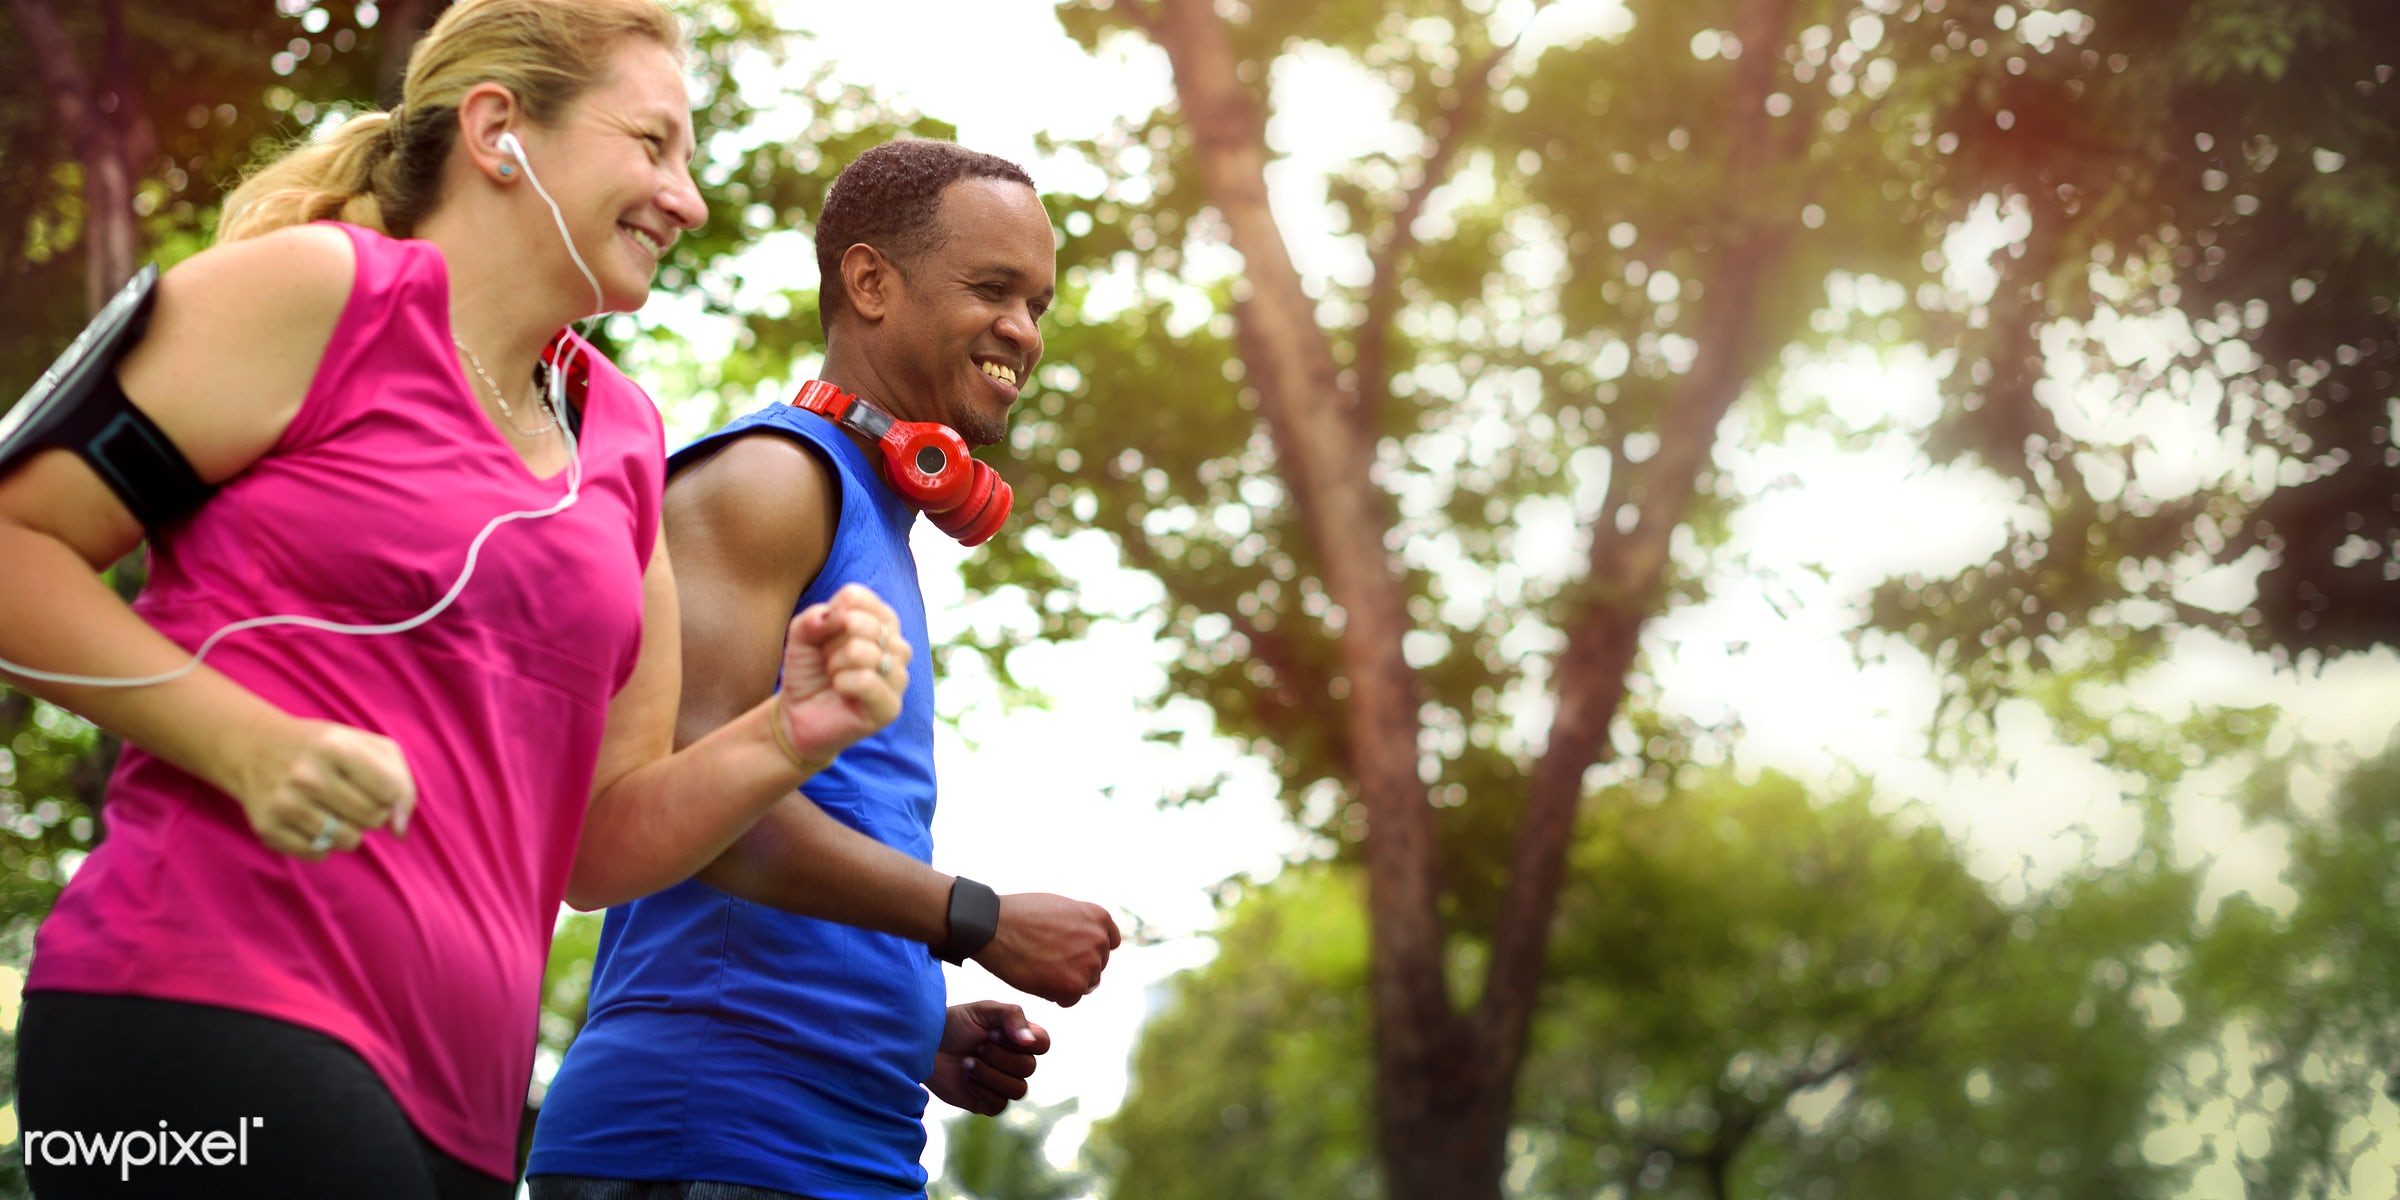 Couple running together at a park - active, activity, app, application, athlete, body building, cardio, cheerful, chubby,...